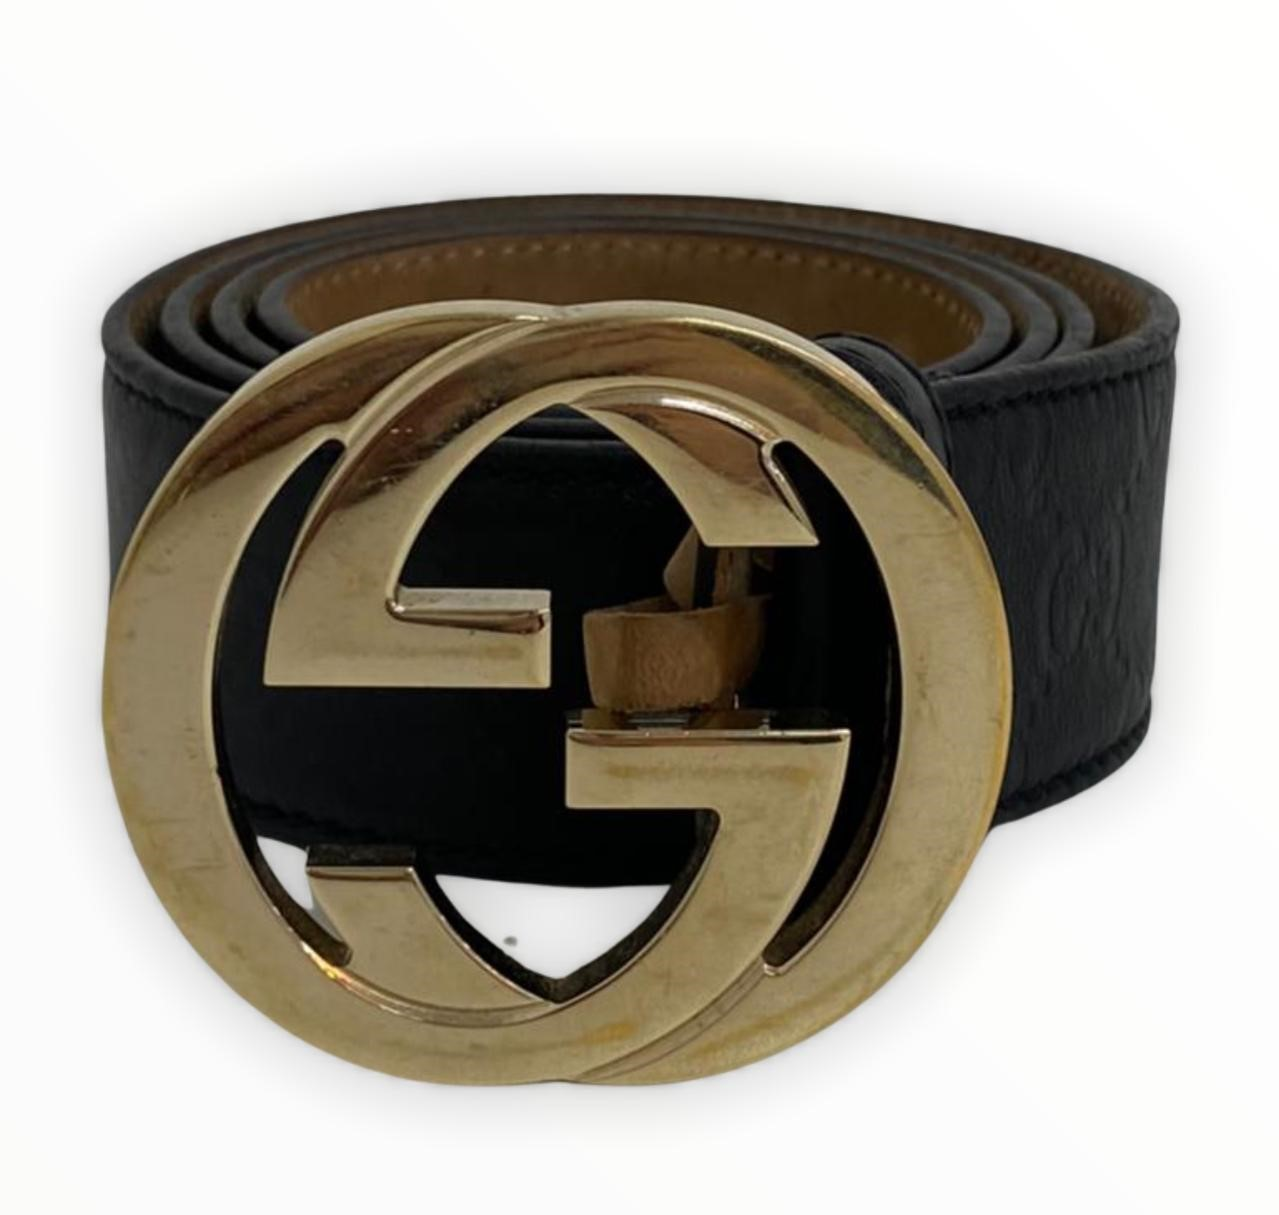 Cinto Gucci With G Buckle